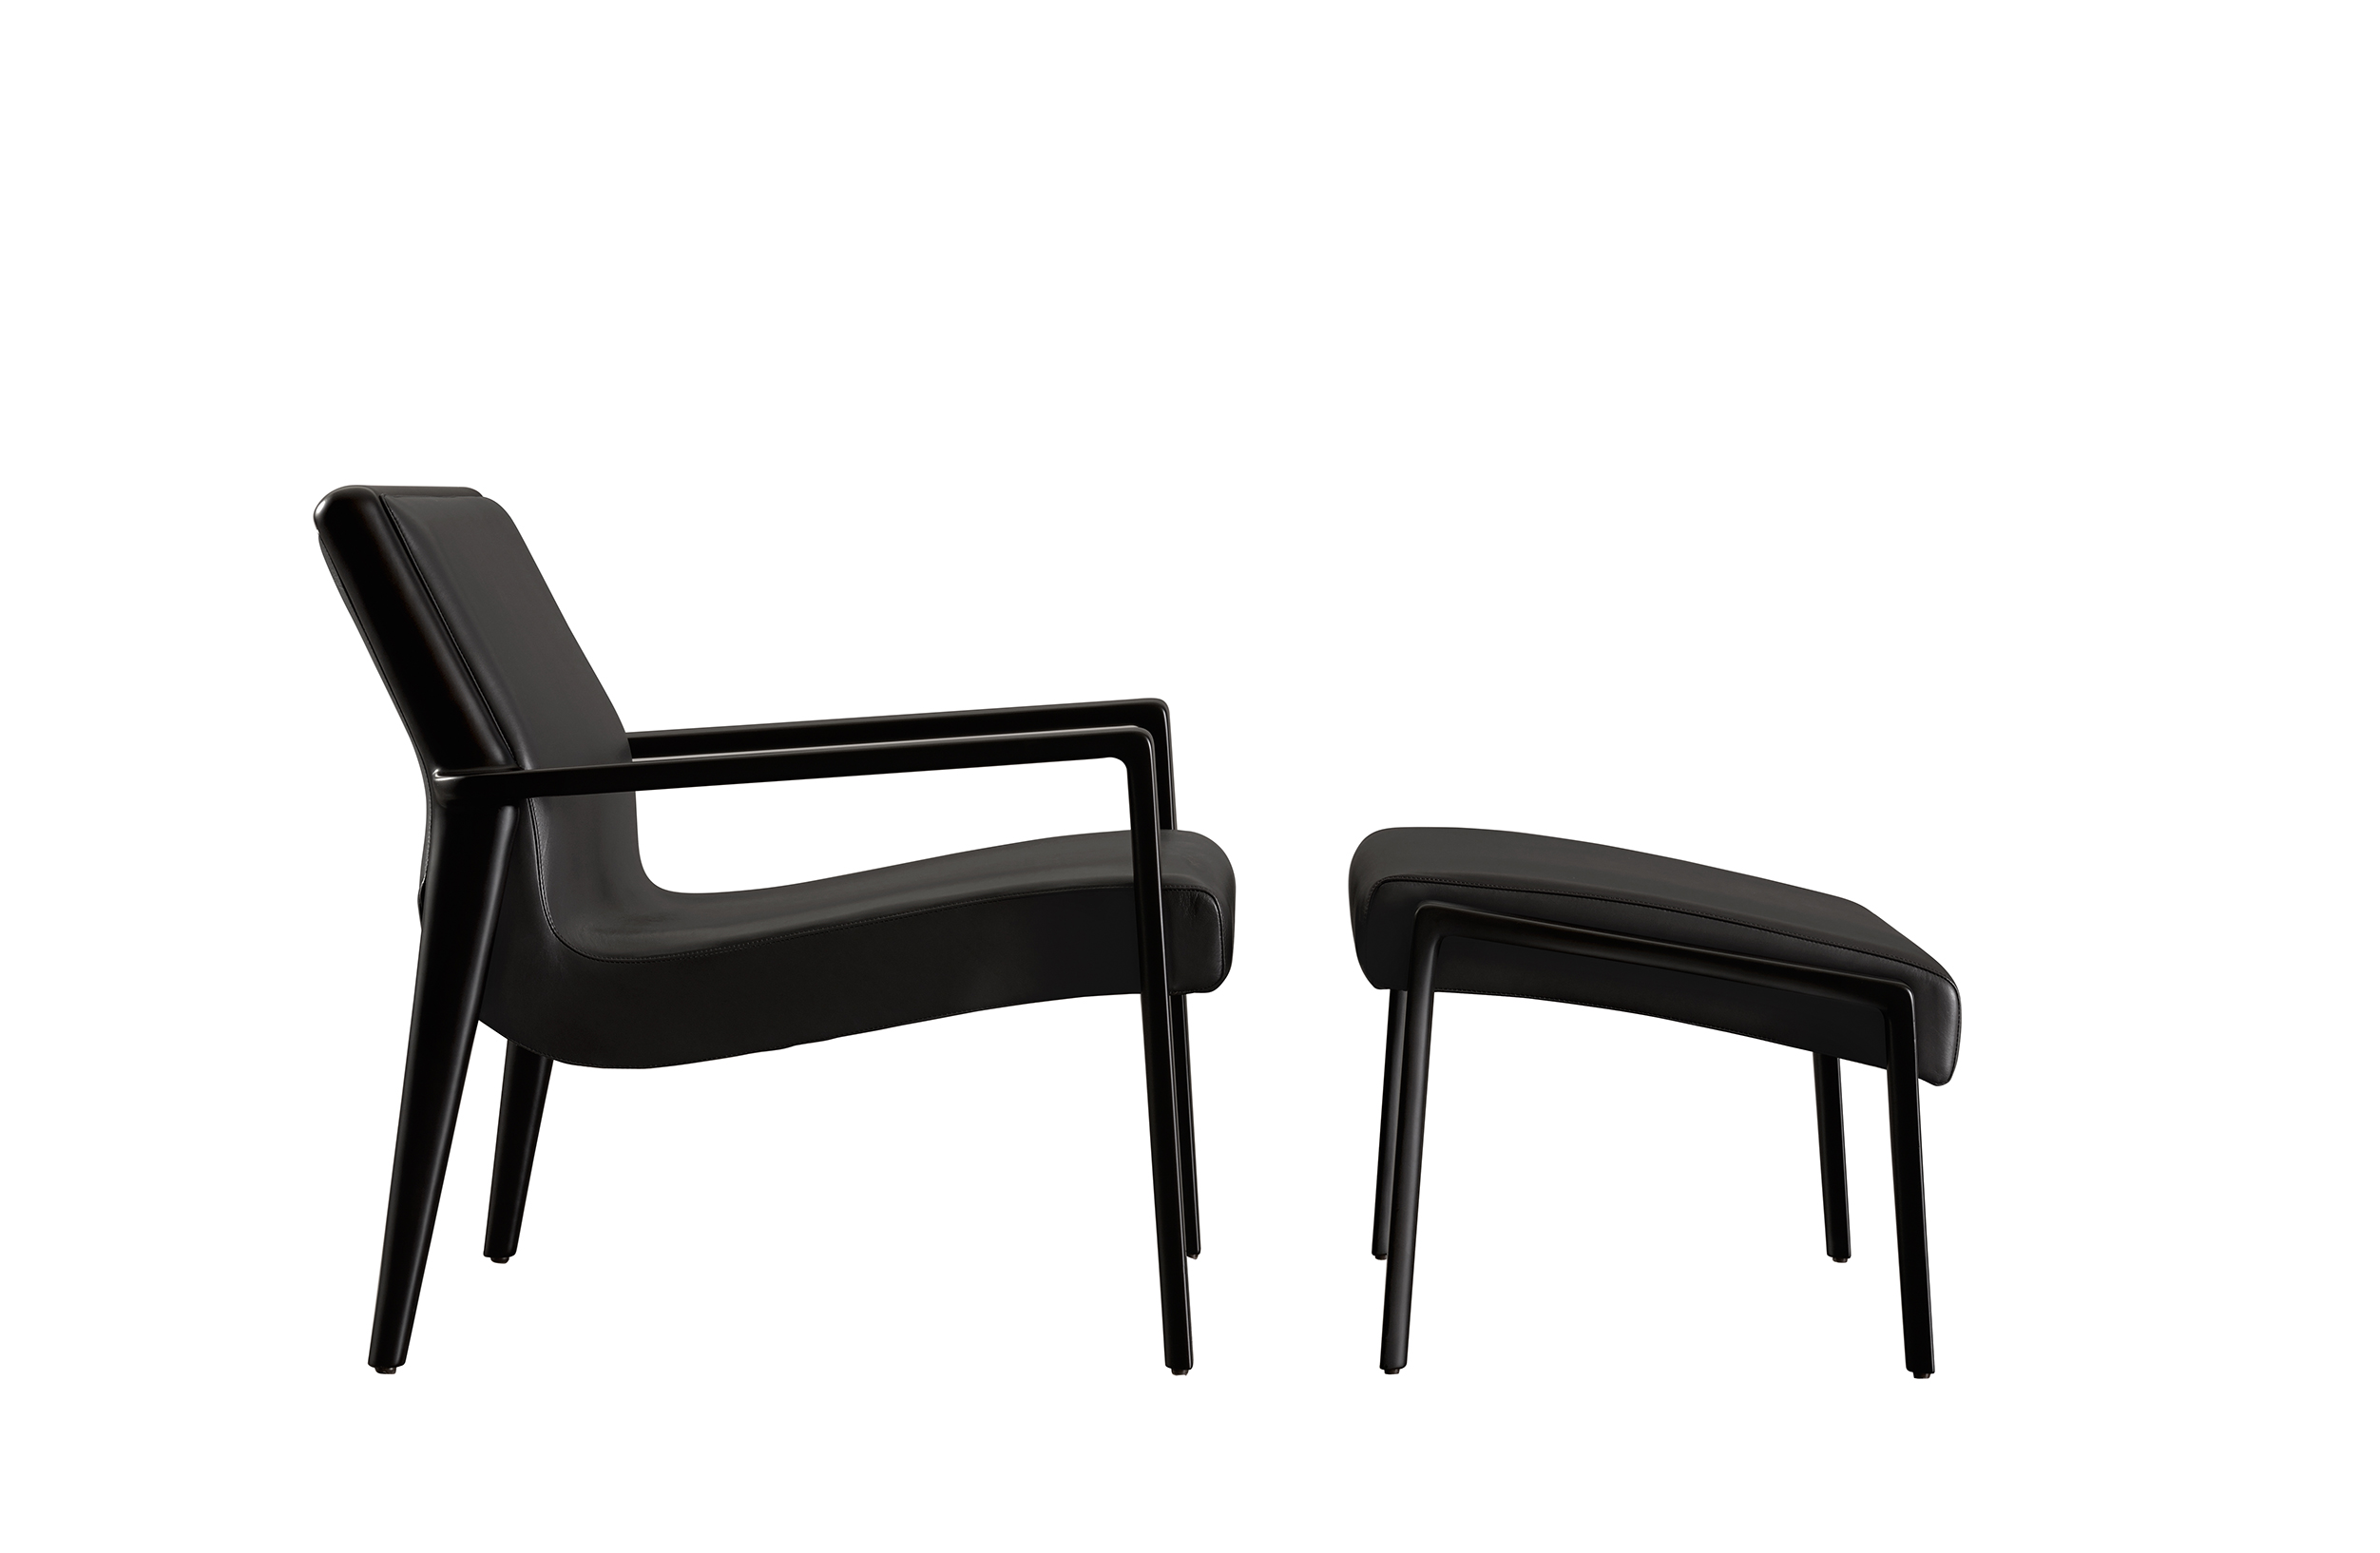 fendi-casa_nairobi-lounge-chair_02